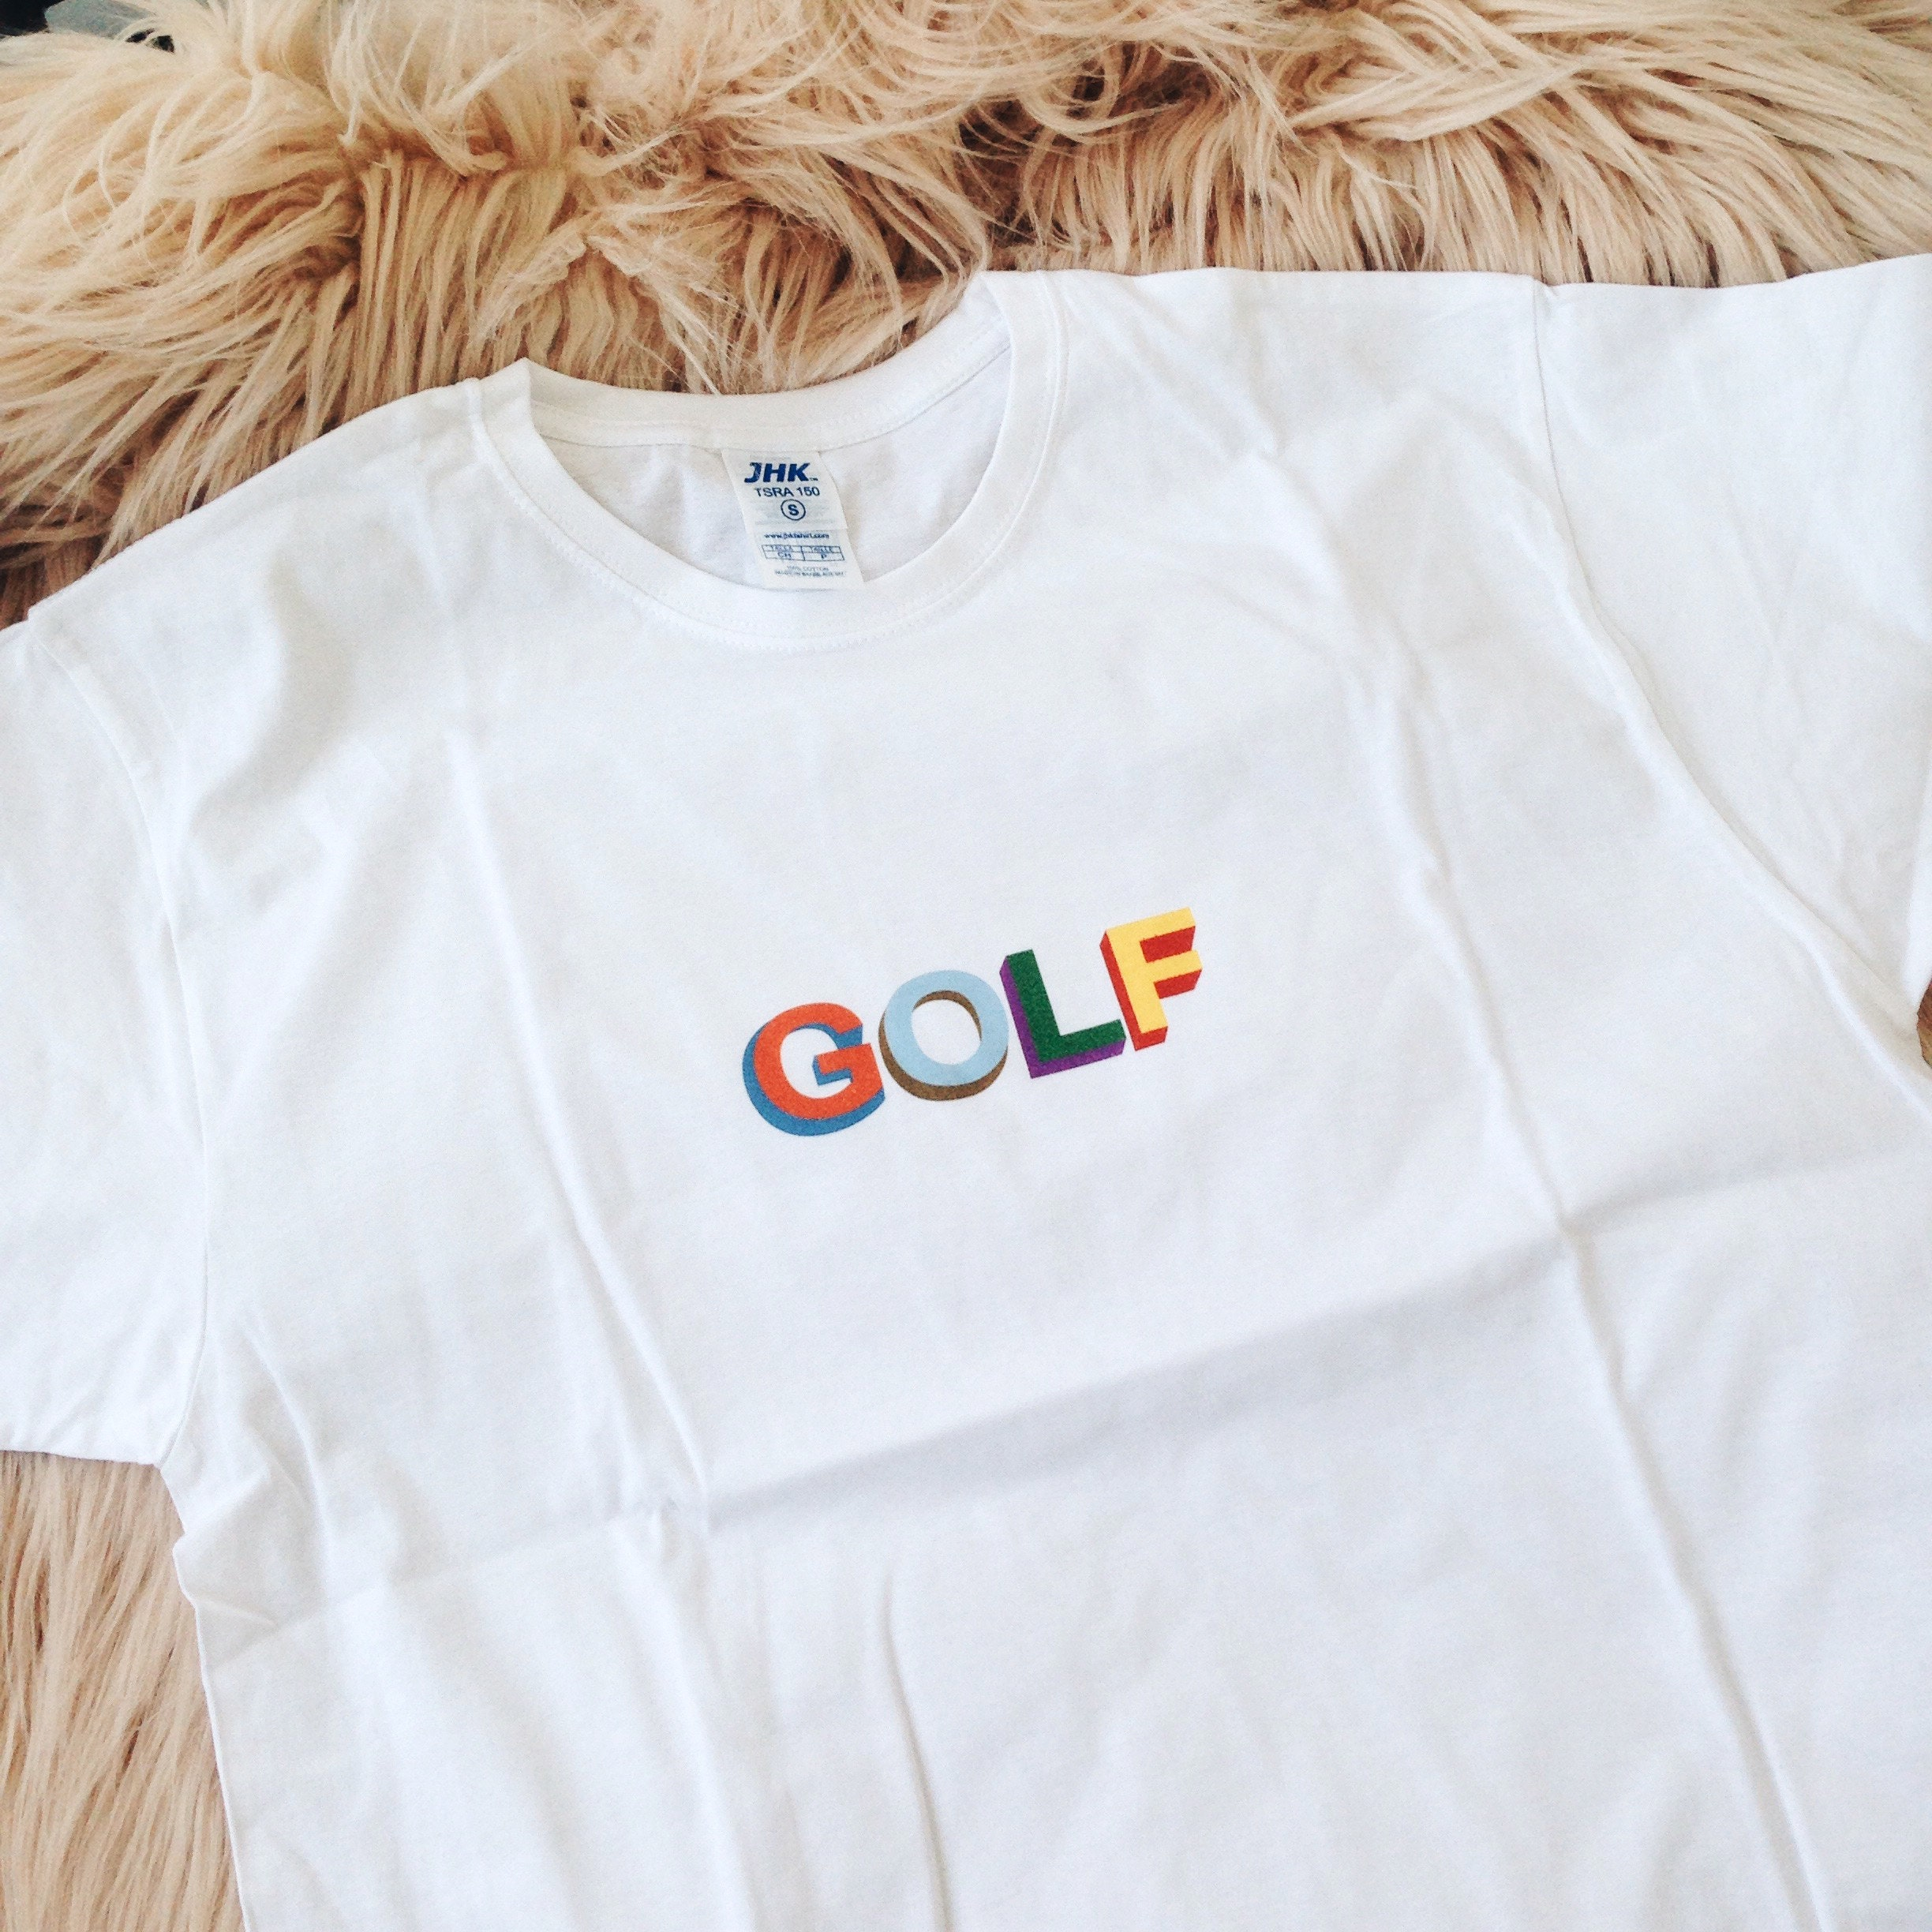 2fc49d31b111 Odd Future Golf Shirt For Sale - BCD Tofu House